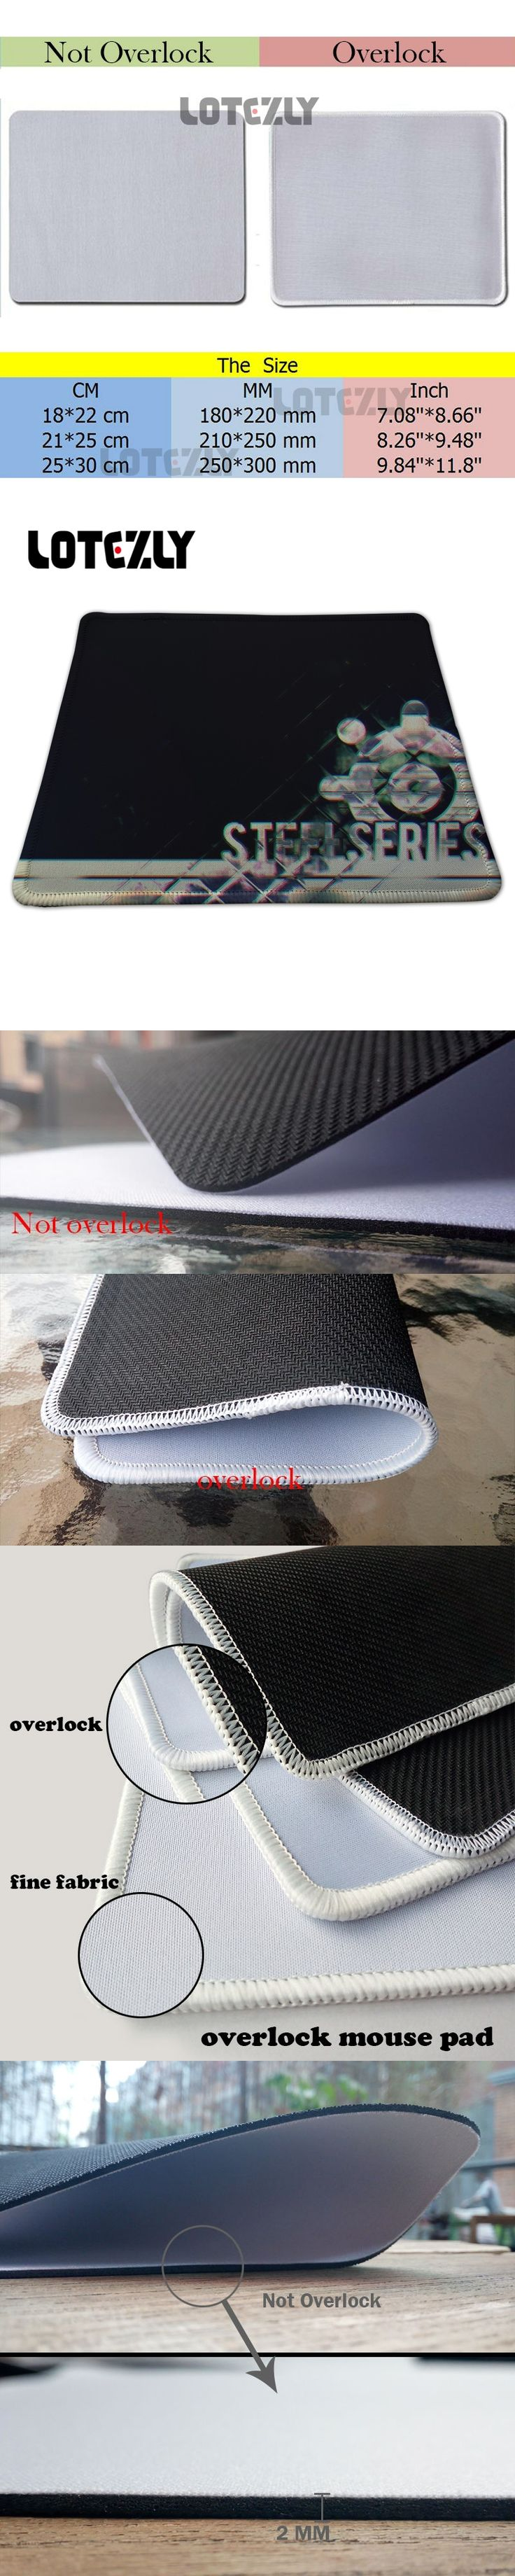 Exclusive Design Steelseries Gaming Mouse Pad Black Rubber Non-slip Gamer Mice Play Mat For PC Computer   Laptop Mousemat